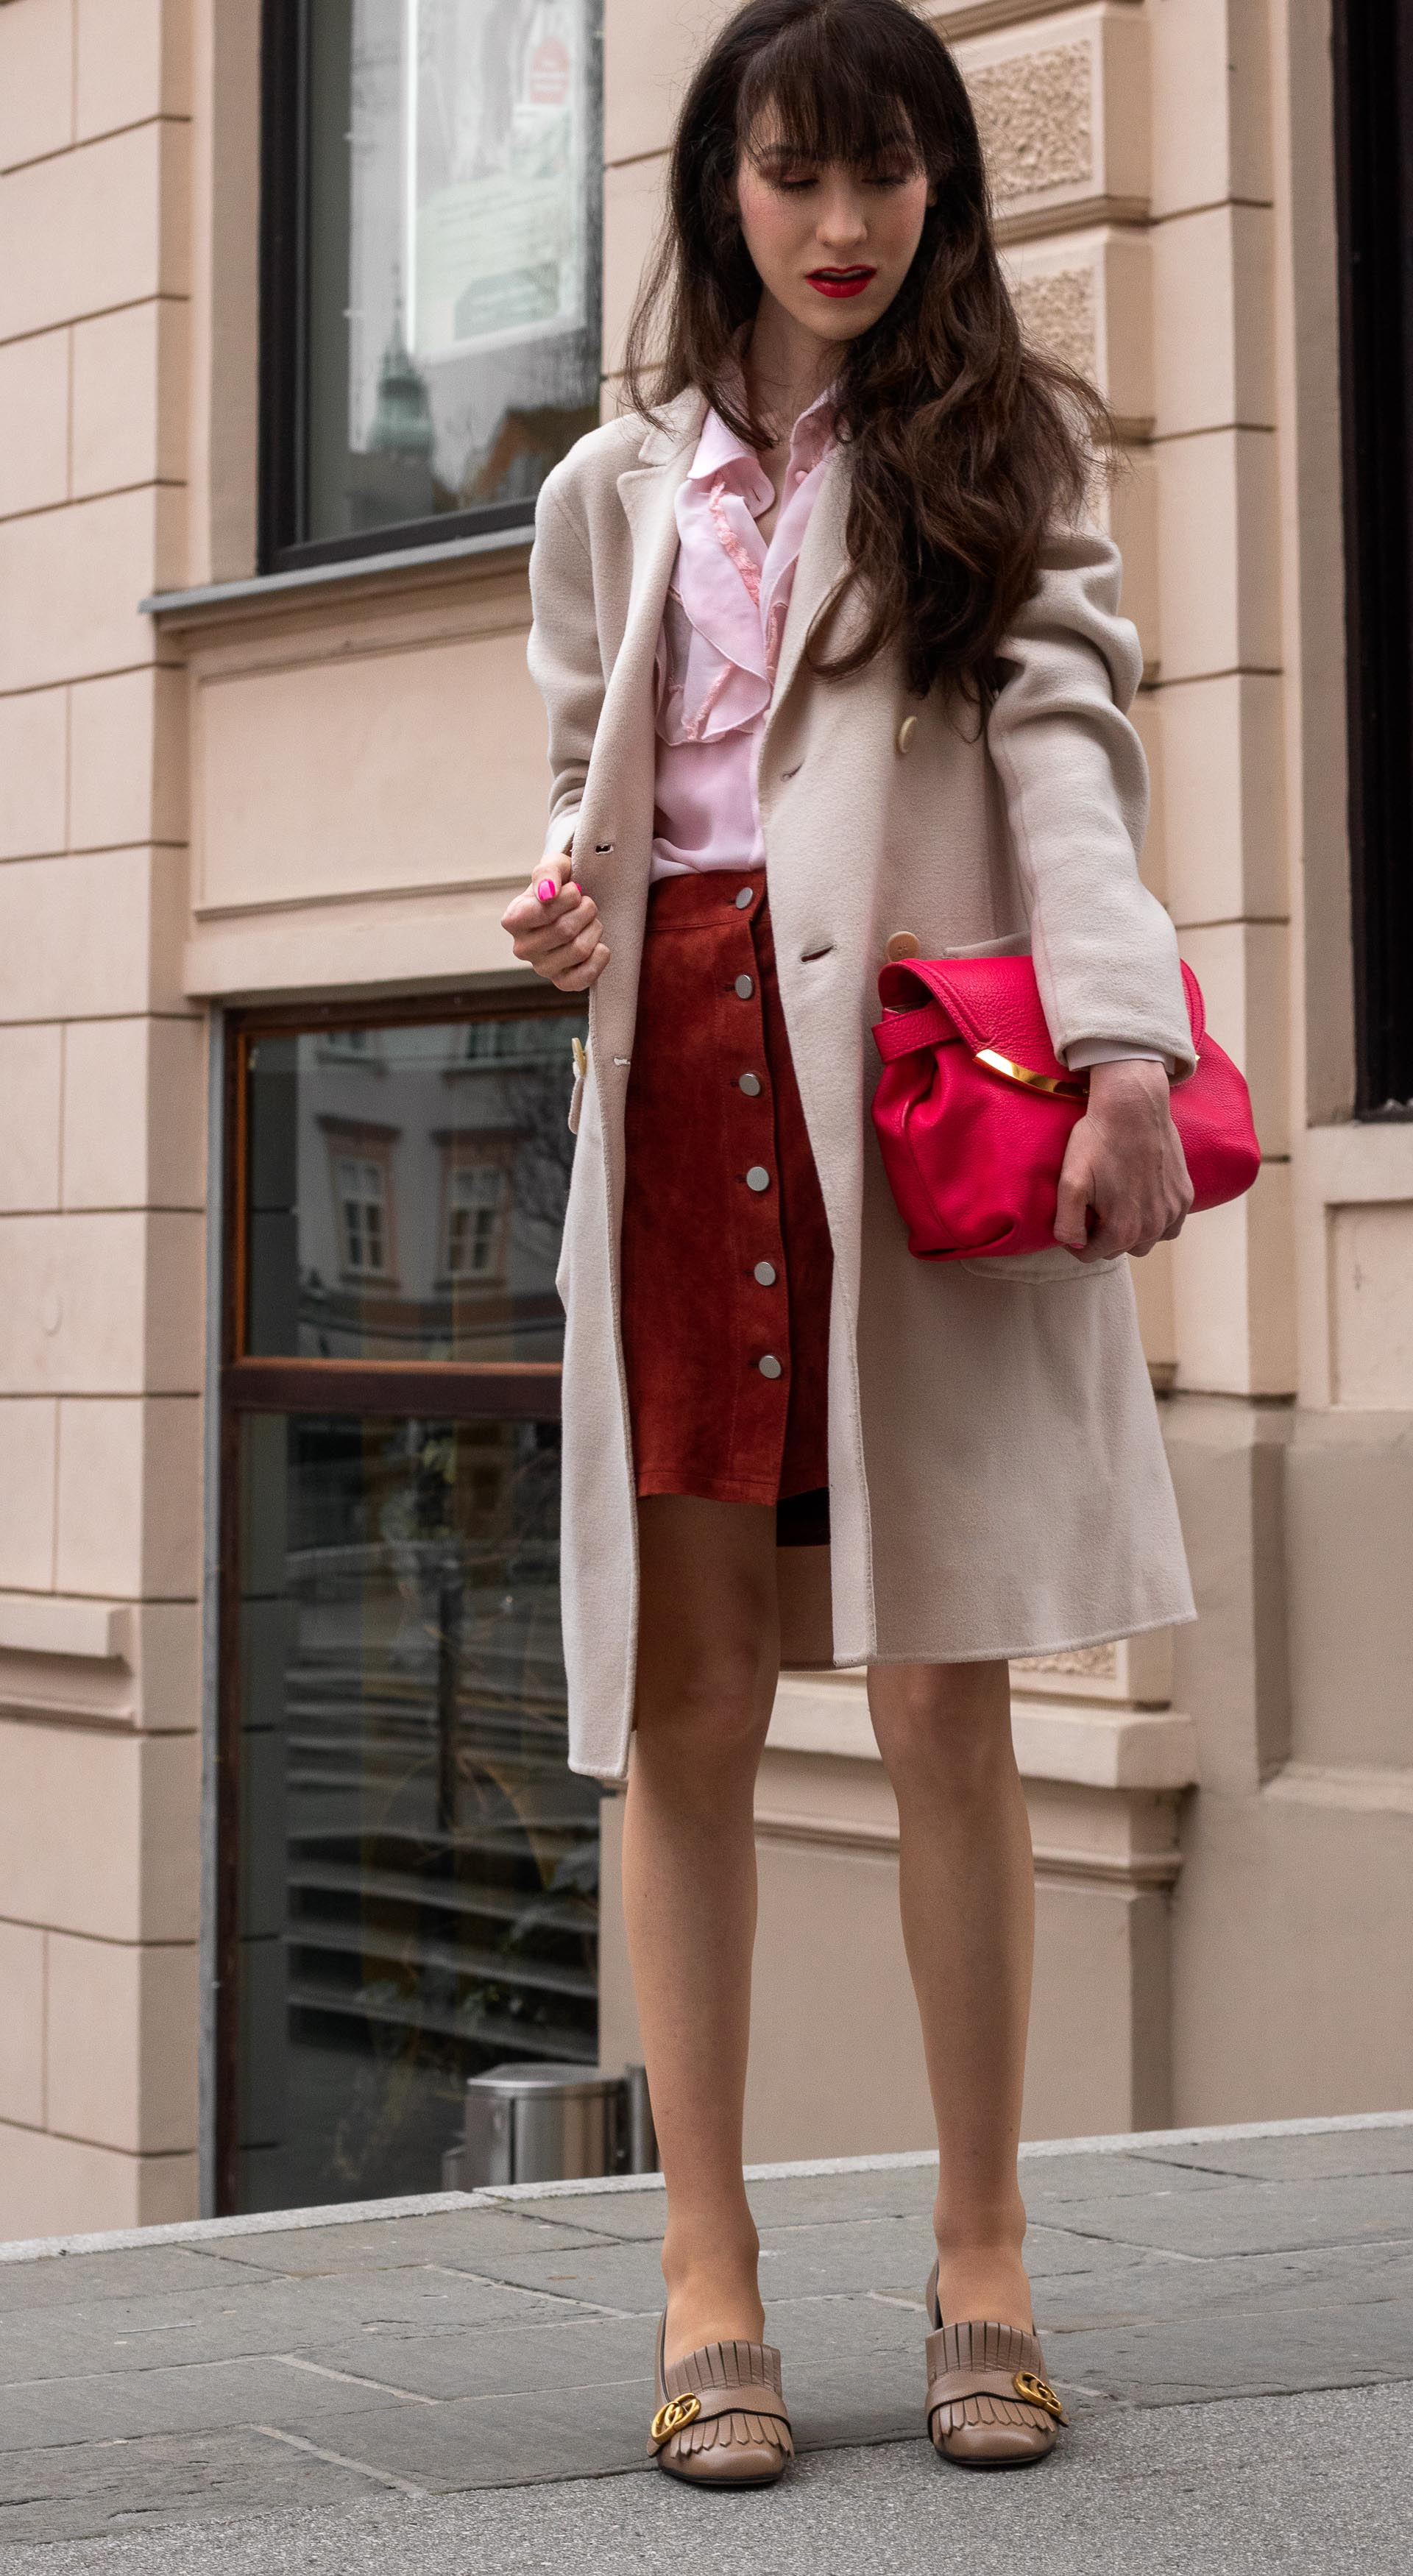 Fashion blogger Veronika Lipar of Brunette from Wall Street dressed in easy transitional outfit Weekend Max Mara double breasted coat Red Valentino pink blouse brown suede front button short skirt pink pouch bag Gucci heeled loafers Monday to Sunday